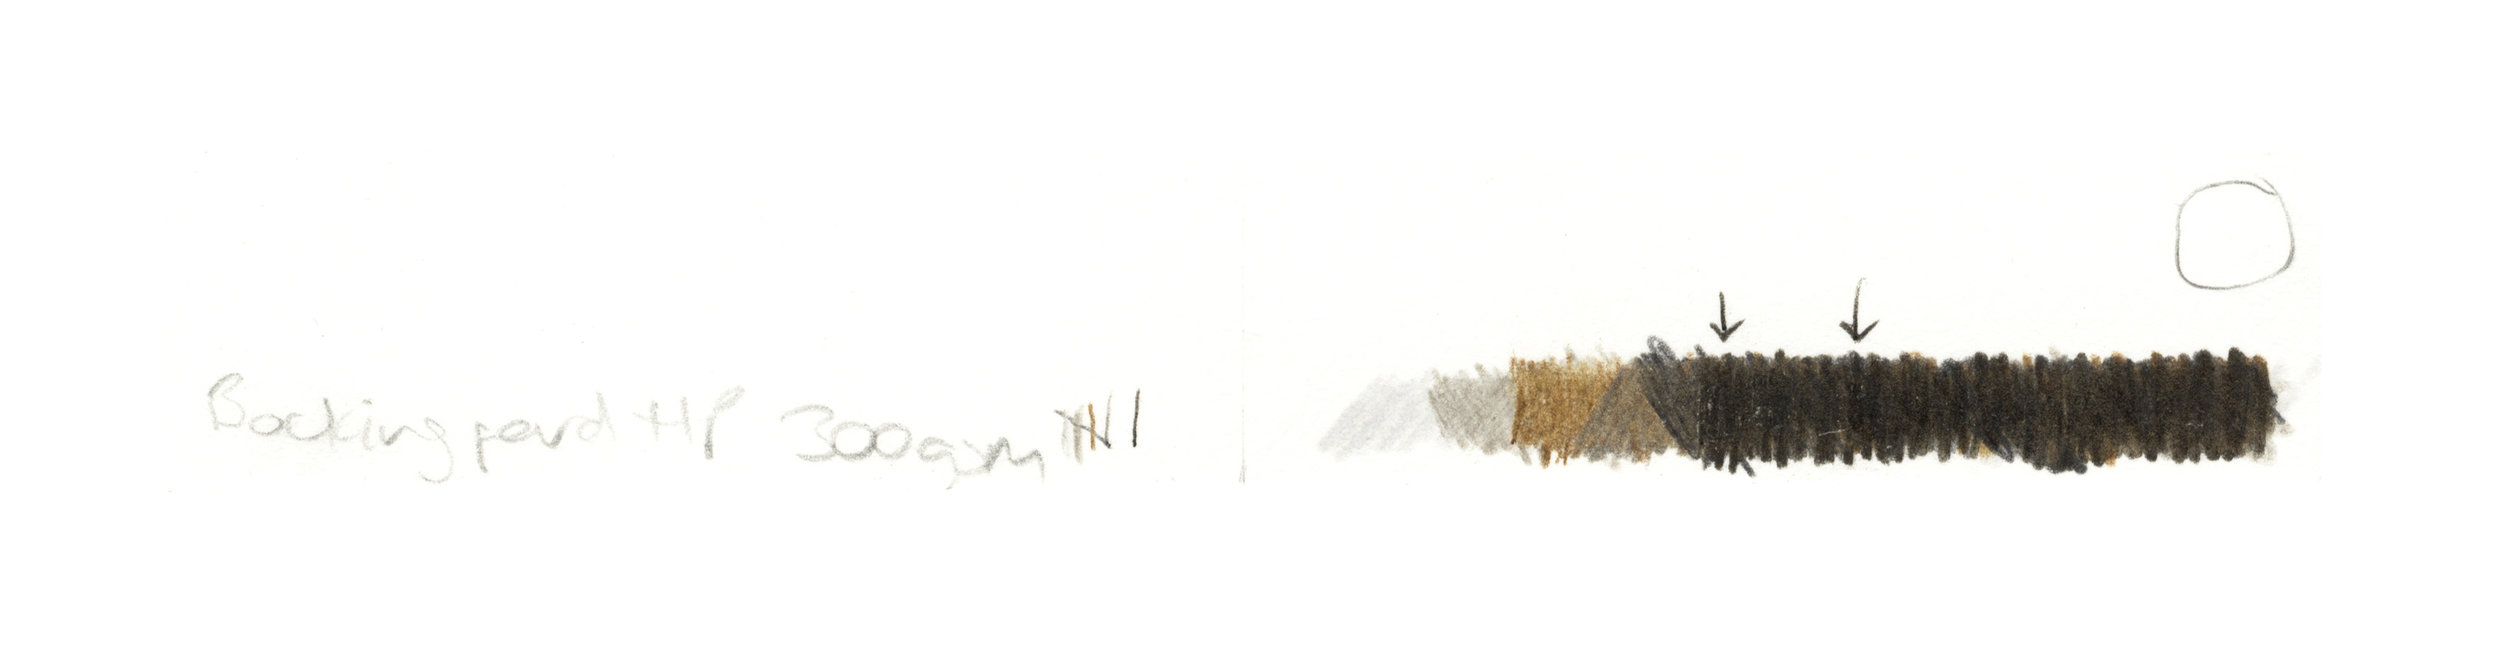 Paper tests for the Bockingford hot press paper, showing test layers of colourpencil shading, and arrows marking where the surface of the paper has fluffed up.   [Image description; grey, brown, & black markings on a thin strip of paper, made to test the papers quality]